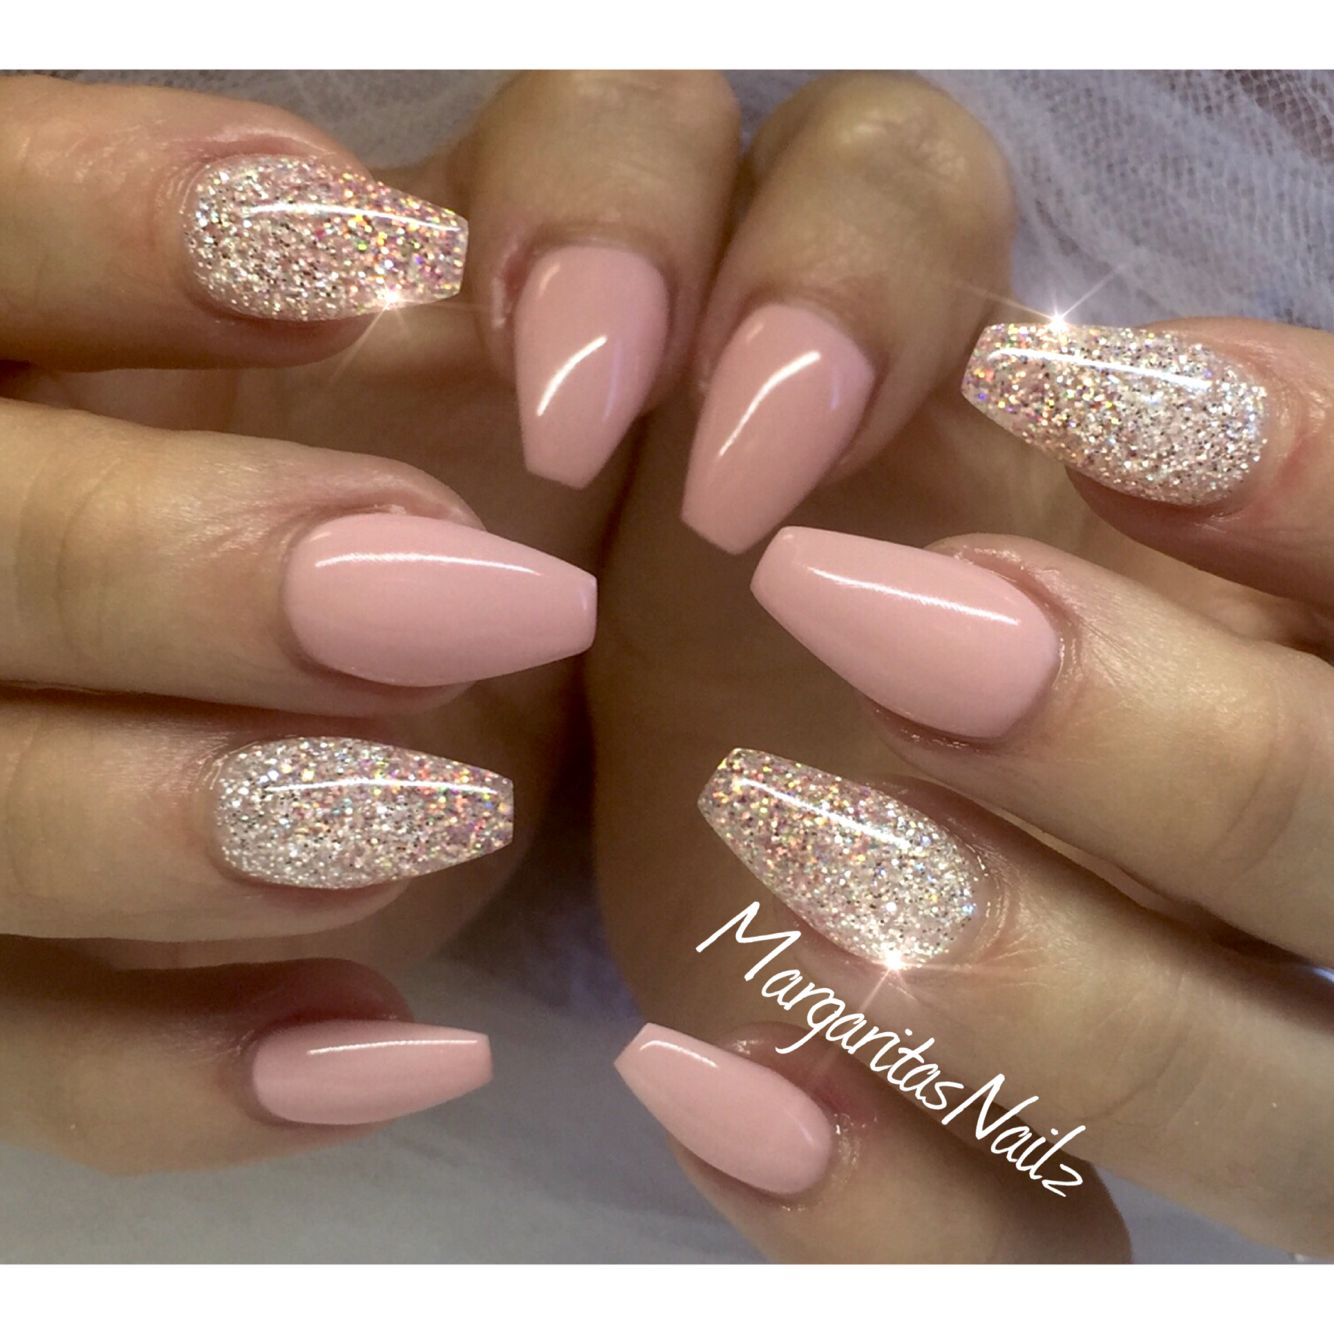 Nude pink glitter nails More - Nude Pink Glitter Nails … Pinteres…